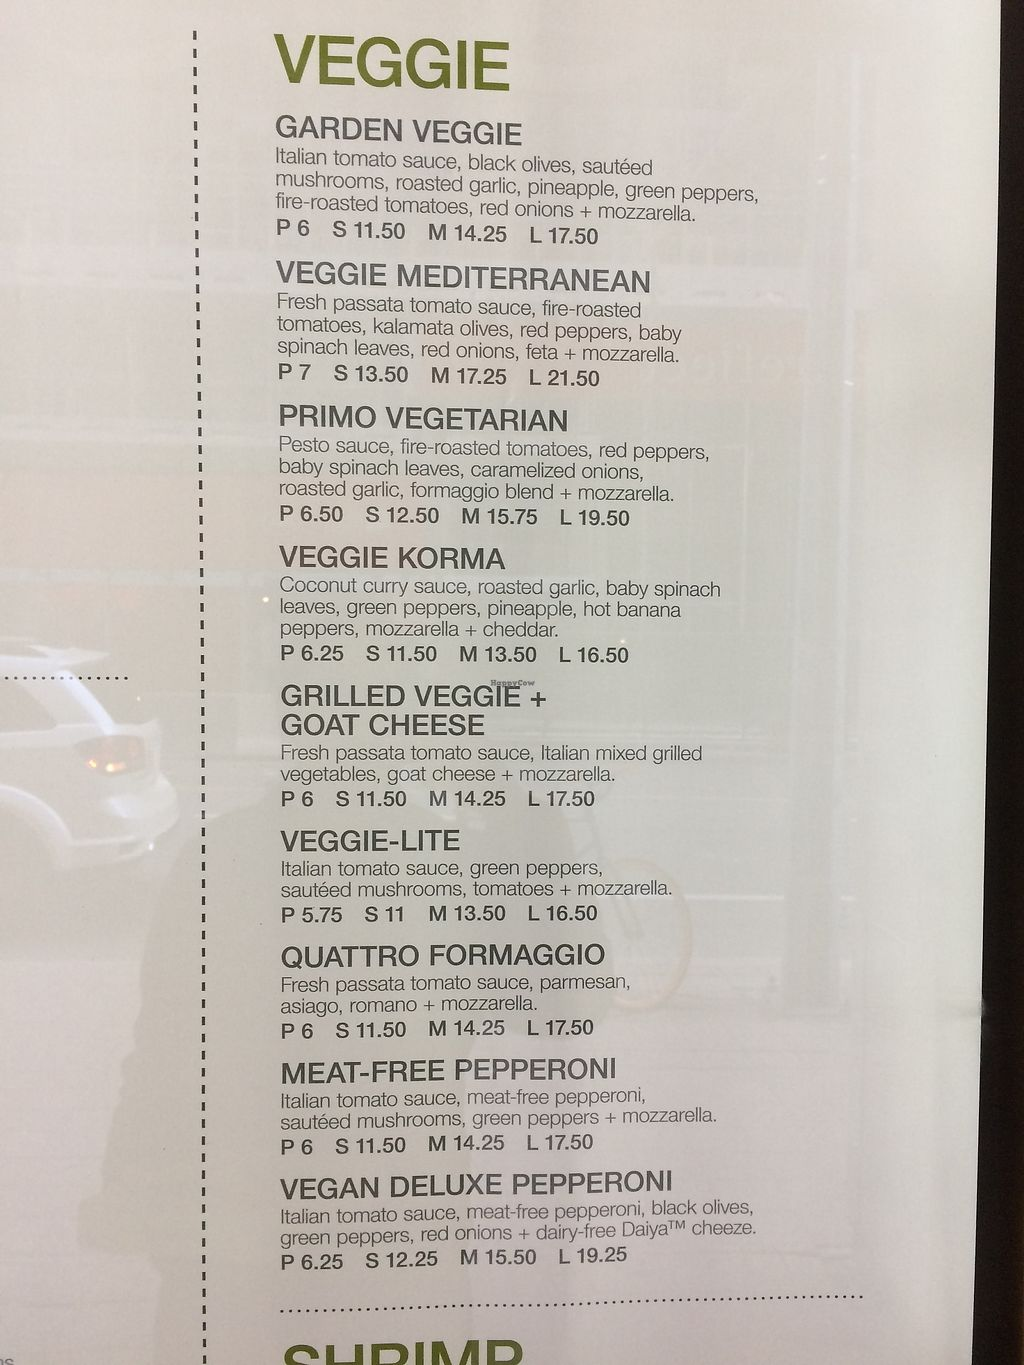 """Photo of Panago Pizza - Eglinton Ave  by <a href=""""/members/profile/jmt"""">jmt</a> <br/>Vegetarian Options <br/> September 19, 2017  - <a href='/contact/abuse/image/101273/306205'>Report</a>"""